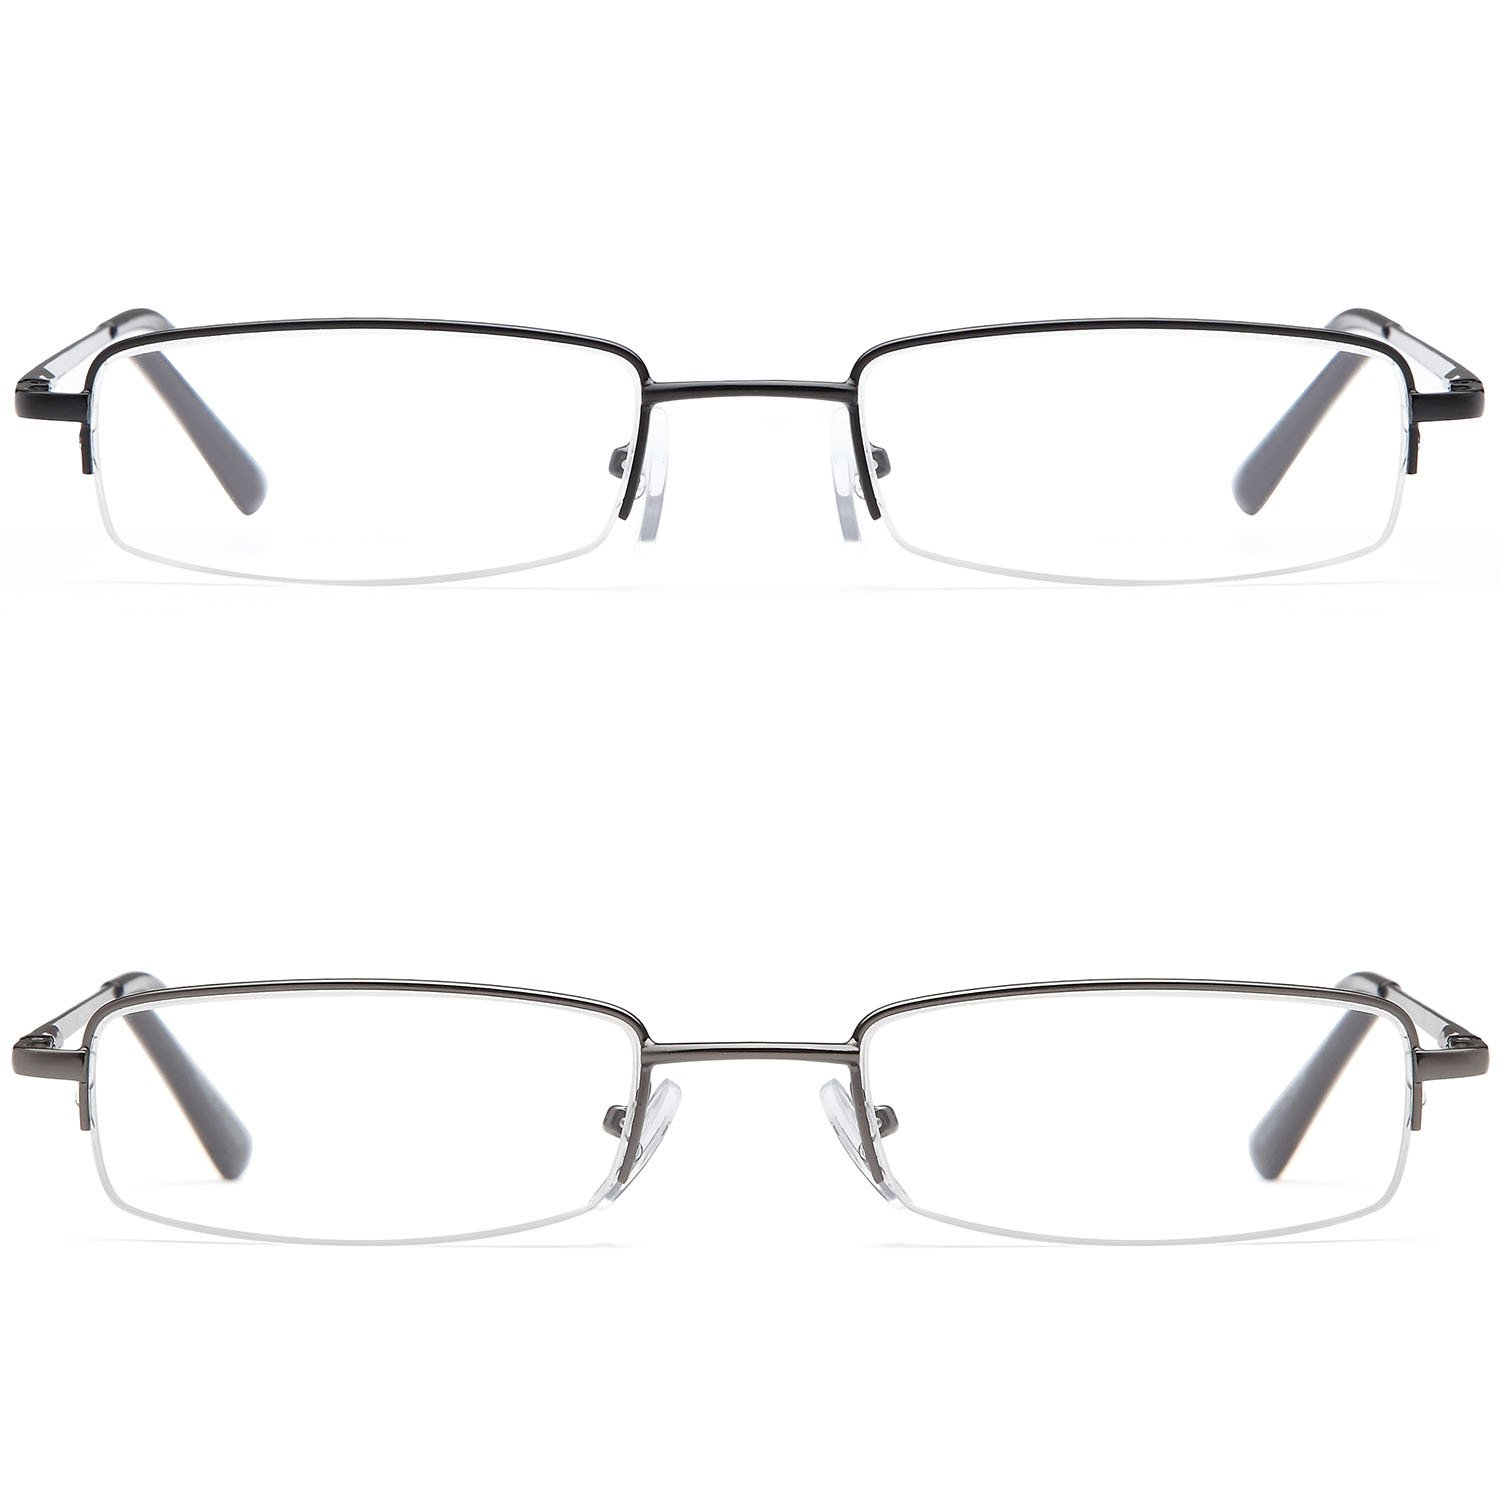 9cd44dba0fc Amazon.com  DOUBLETAKE 2 Pack Half Rim Reading Glass Readers w Hard Case   Clothing